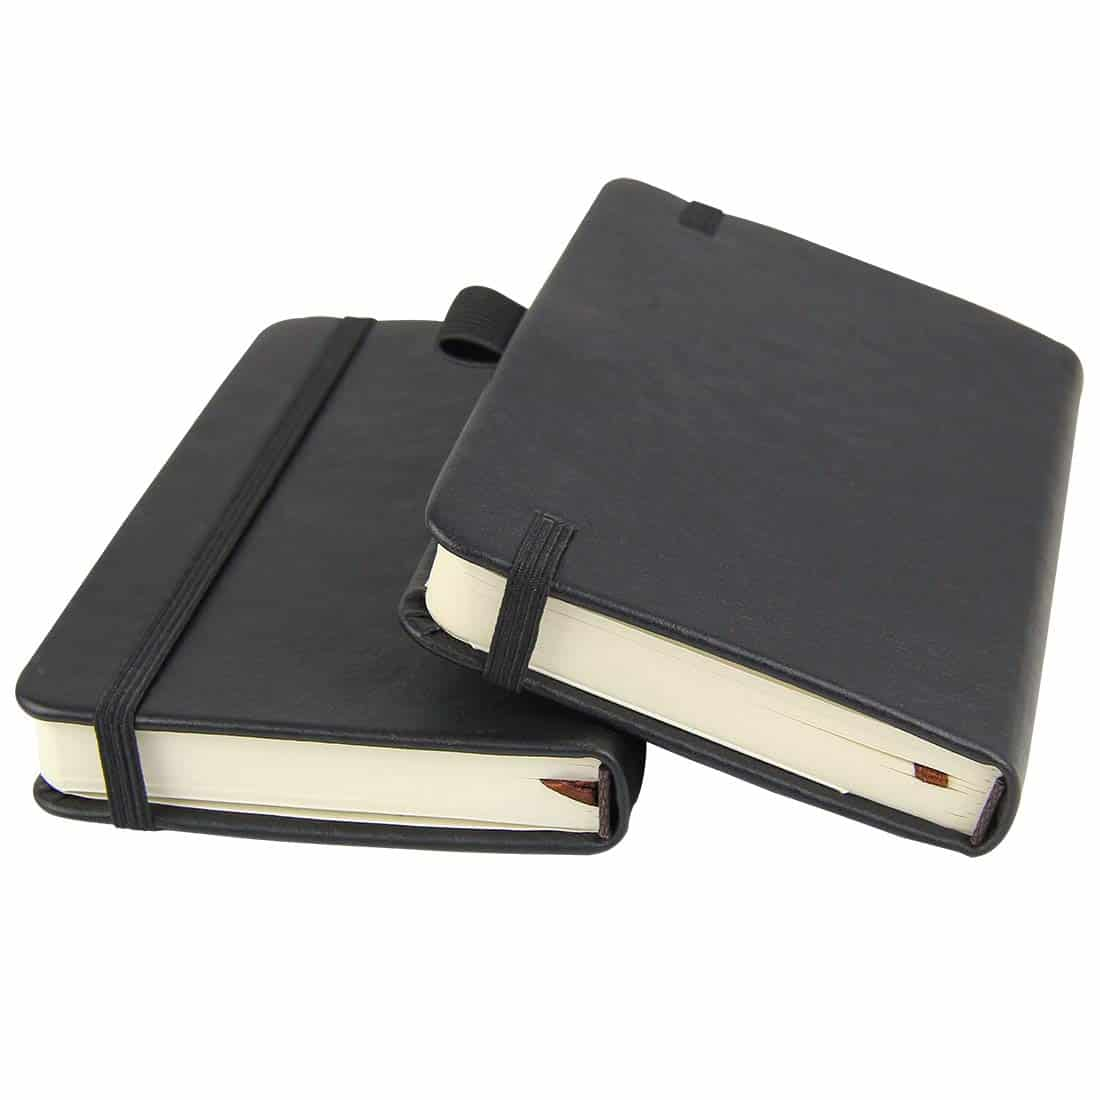 Newestor (2 Pack) Pocket Notebook